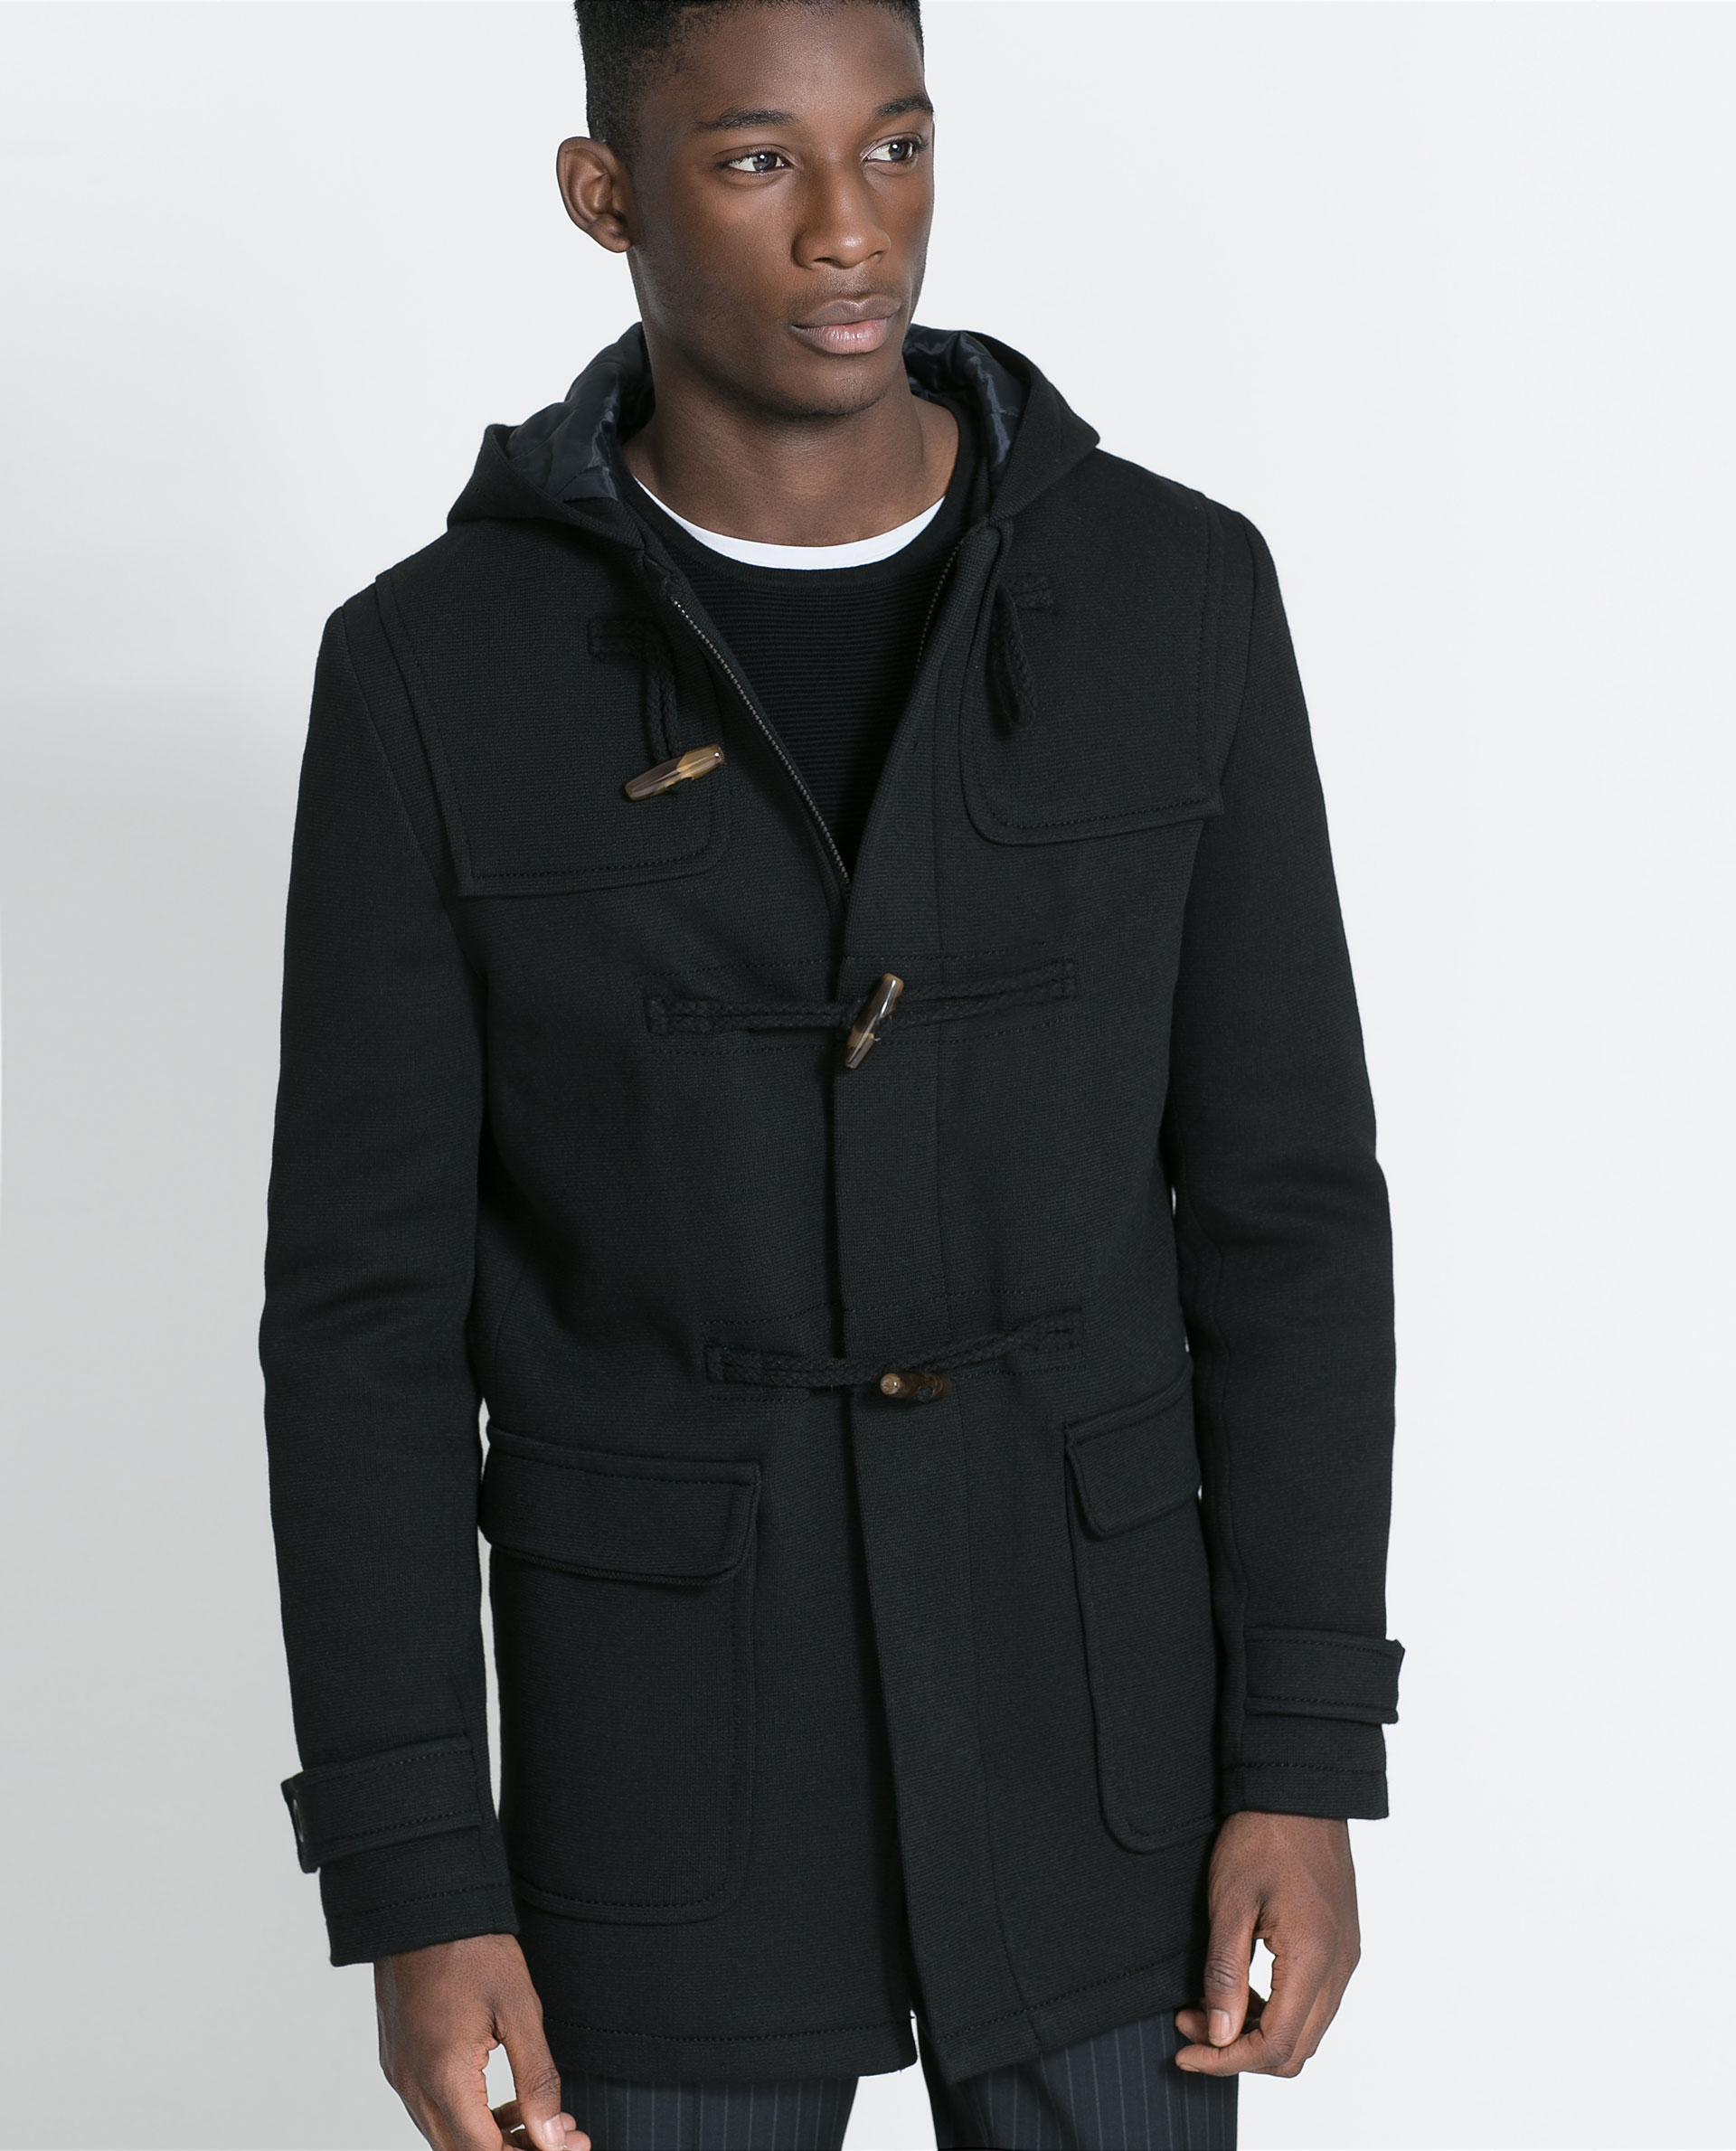 Zara Knit Duffle Coat in Black for Men | Lyst